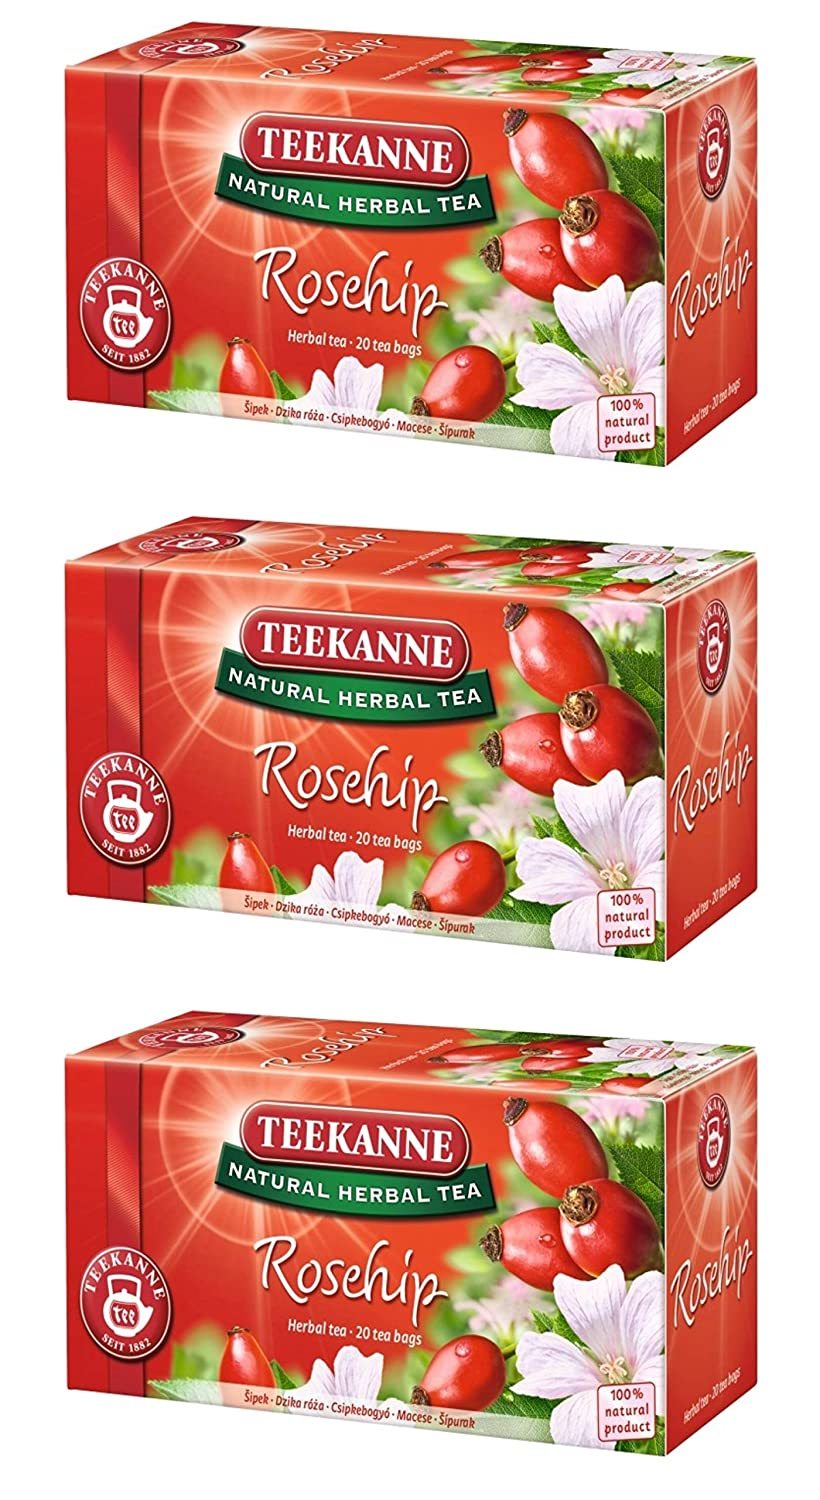 Teekanne Rosehip Flower Tea Pack of 3 From Europe